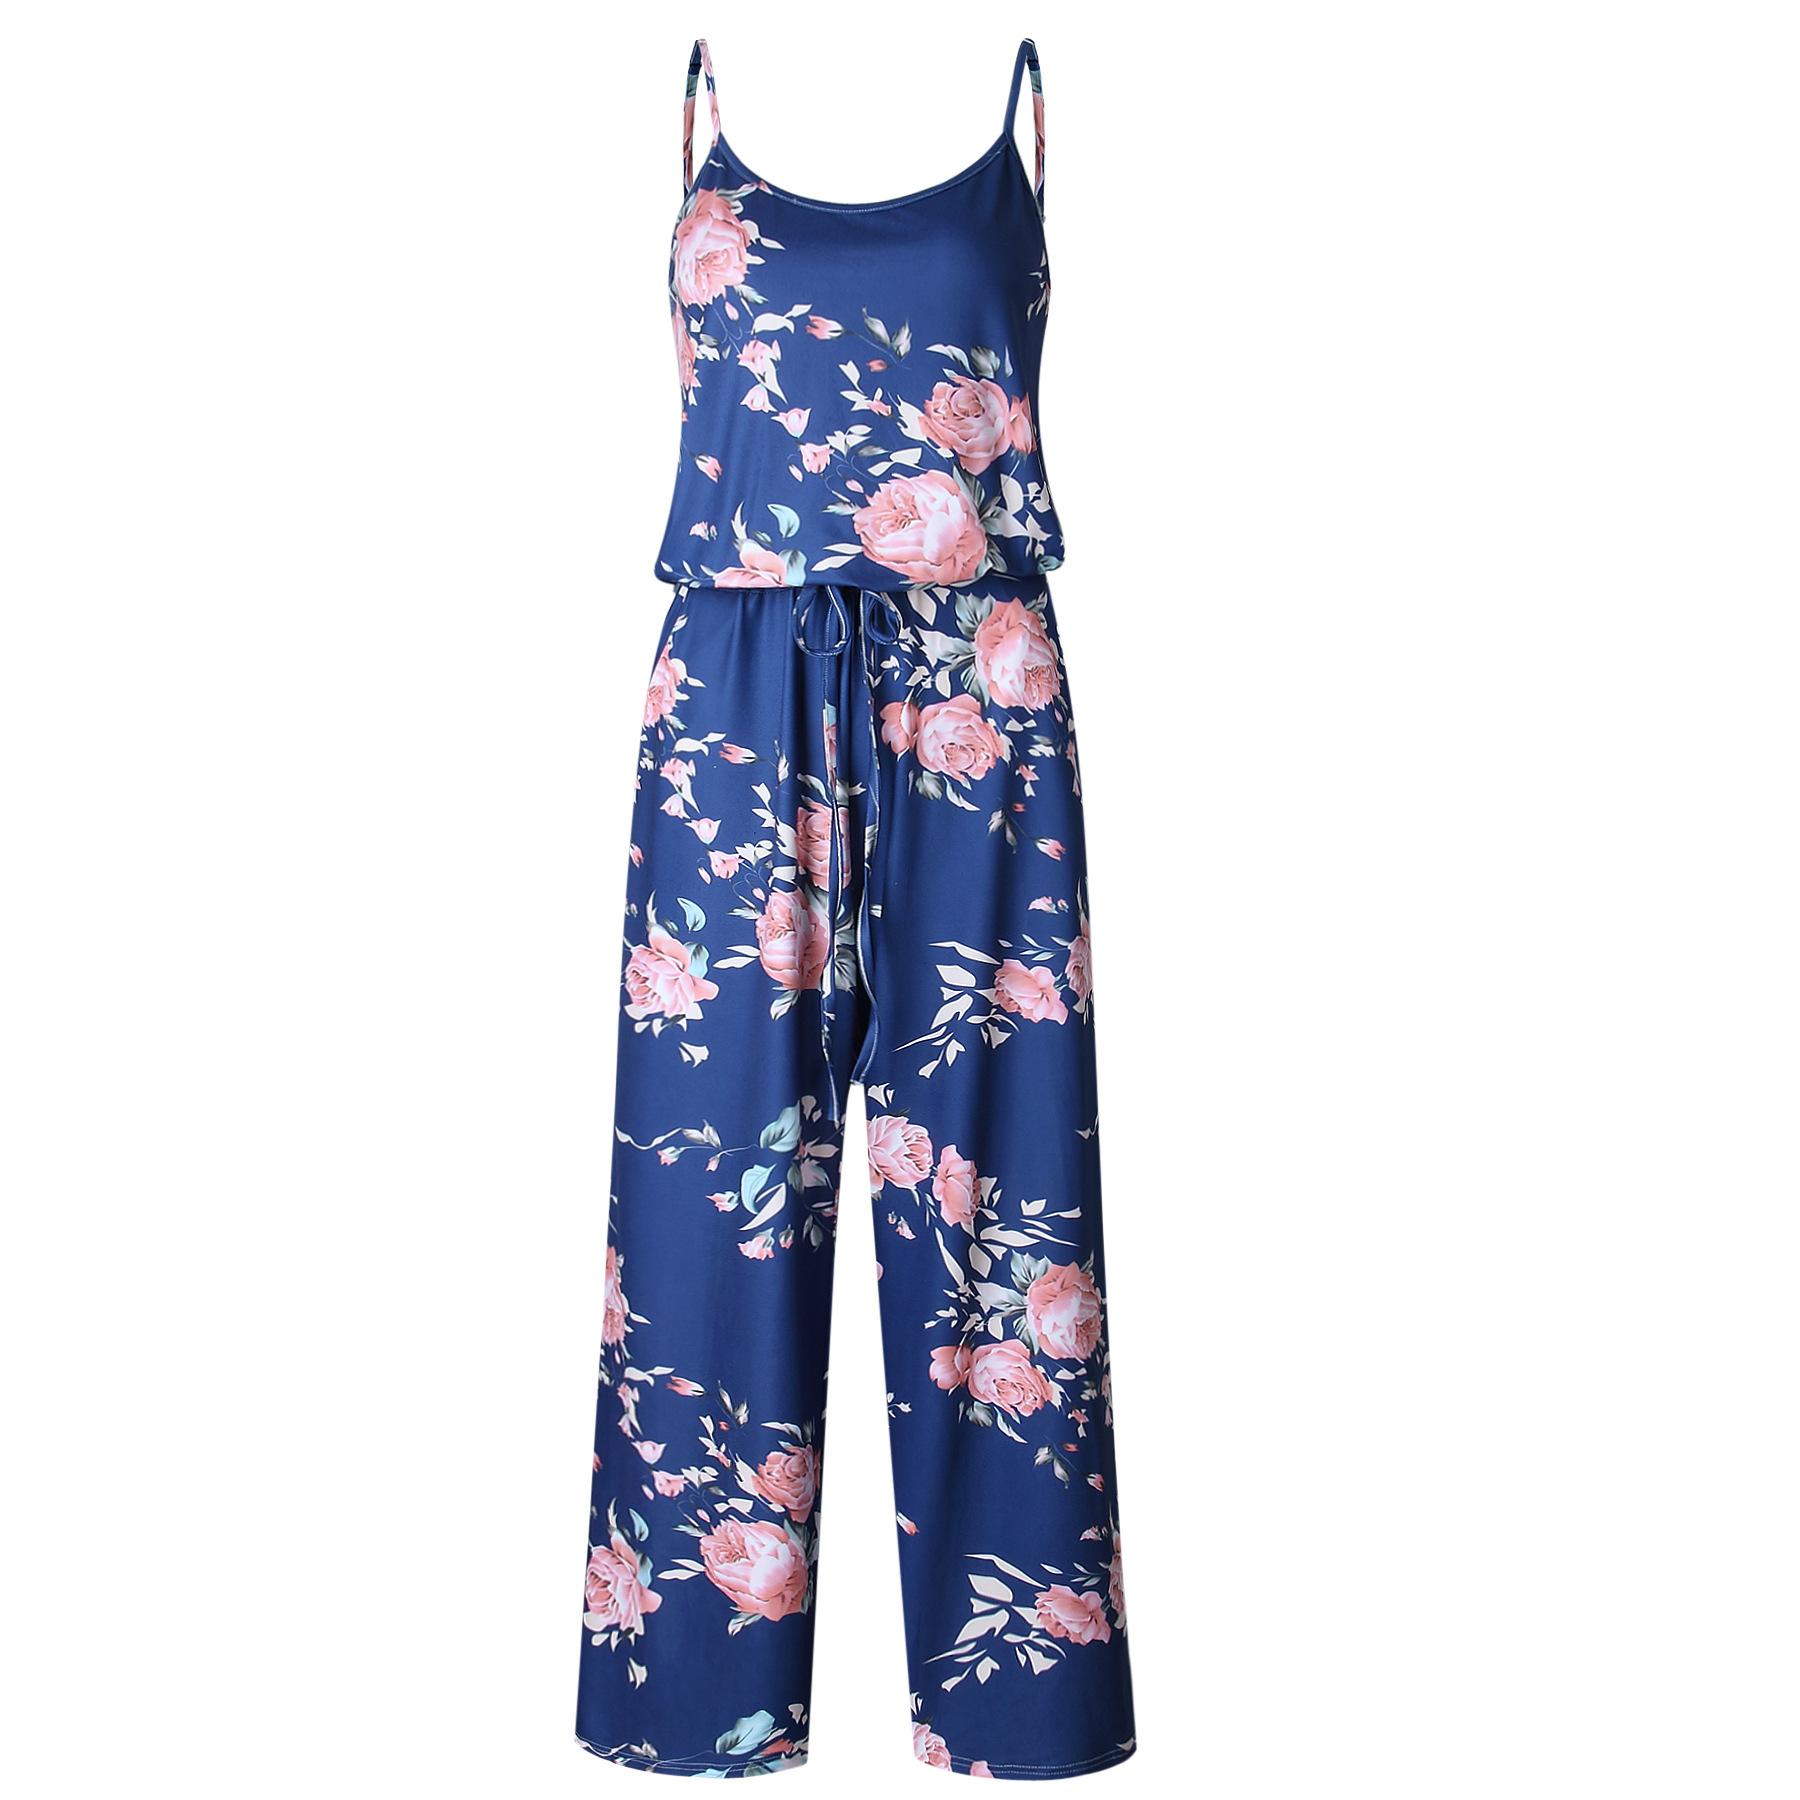 Spaghetti Strap Jumpsuit Women 2018 Summer Long Pants Floral Print Rompers Beach Casual Jumpsuits Sleeveless Sashes Playsuits 22